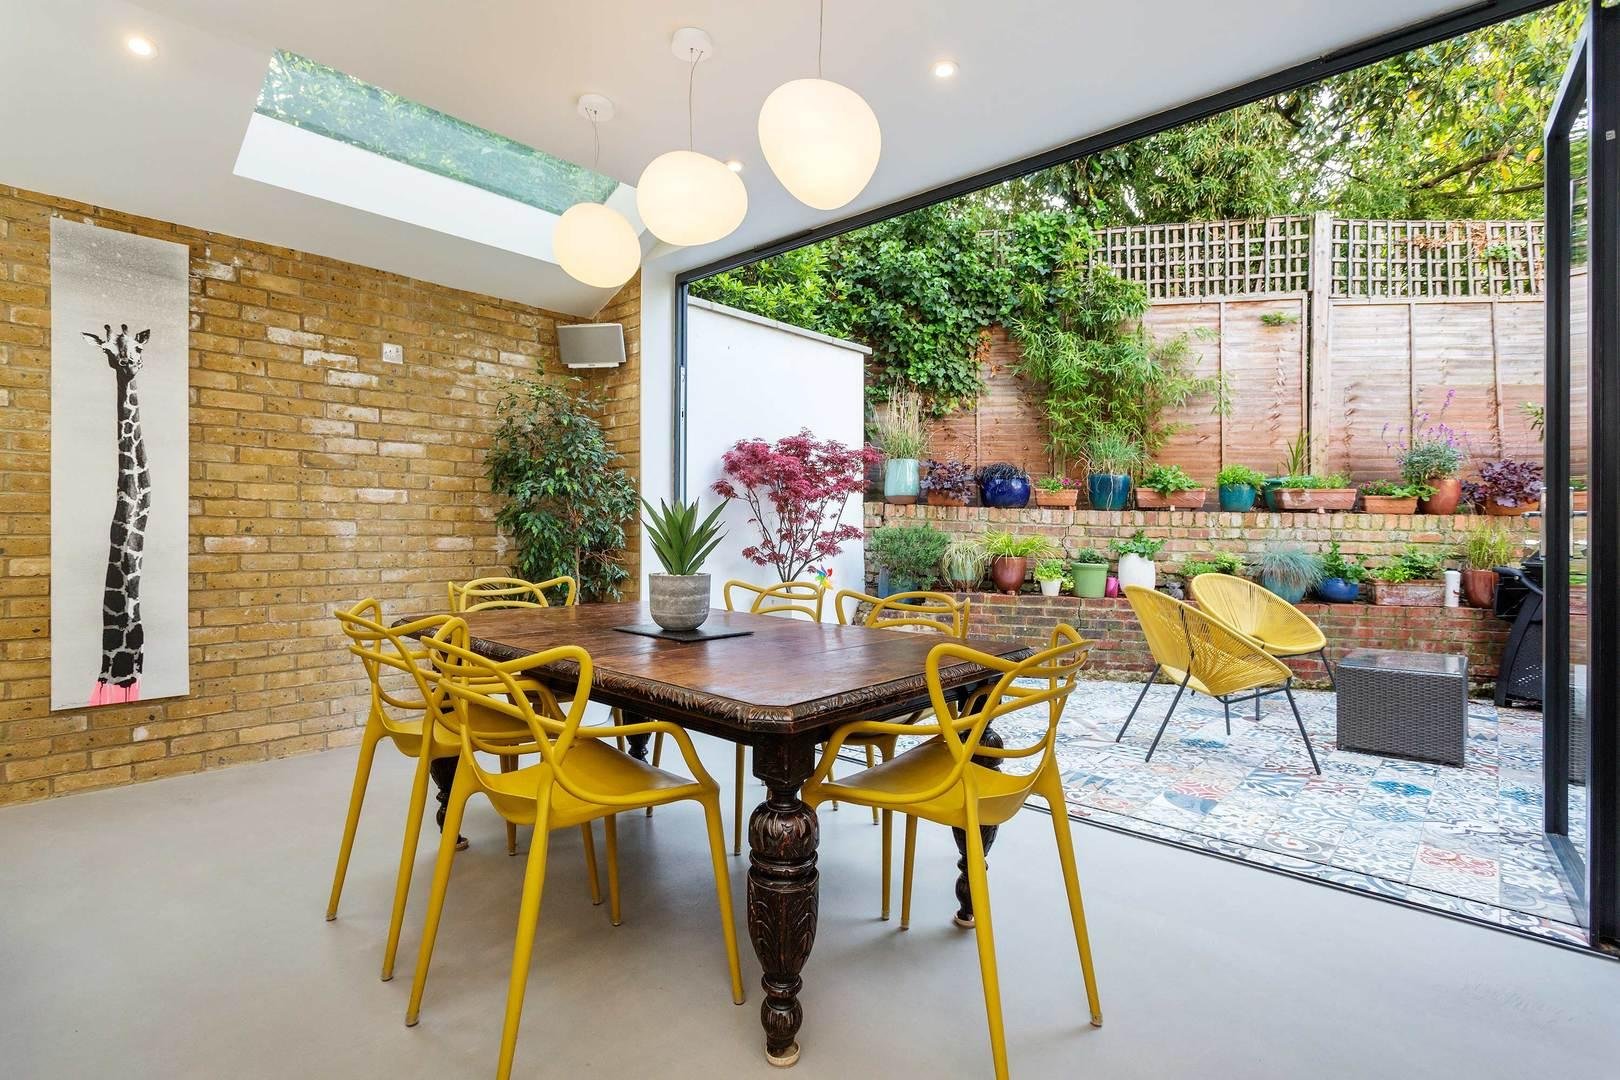 Property Image 1 - Colourful Trendy Islington House with Patio Garden